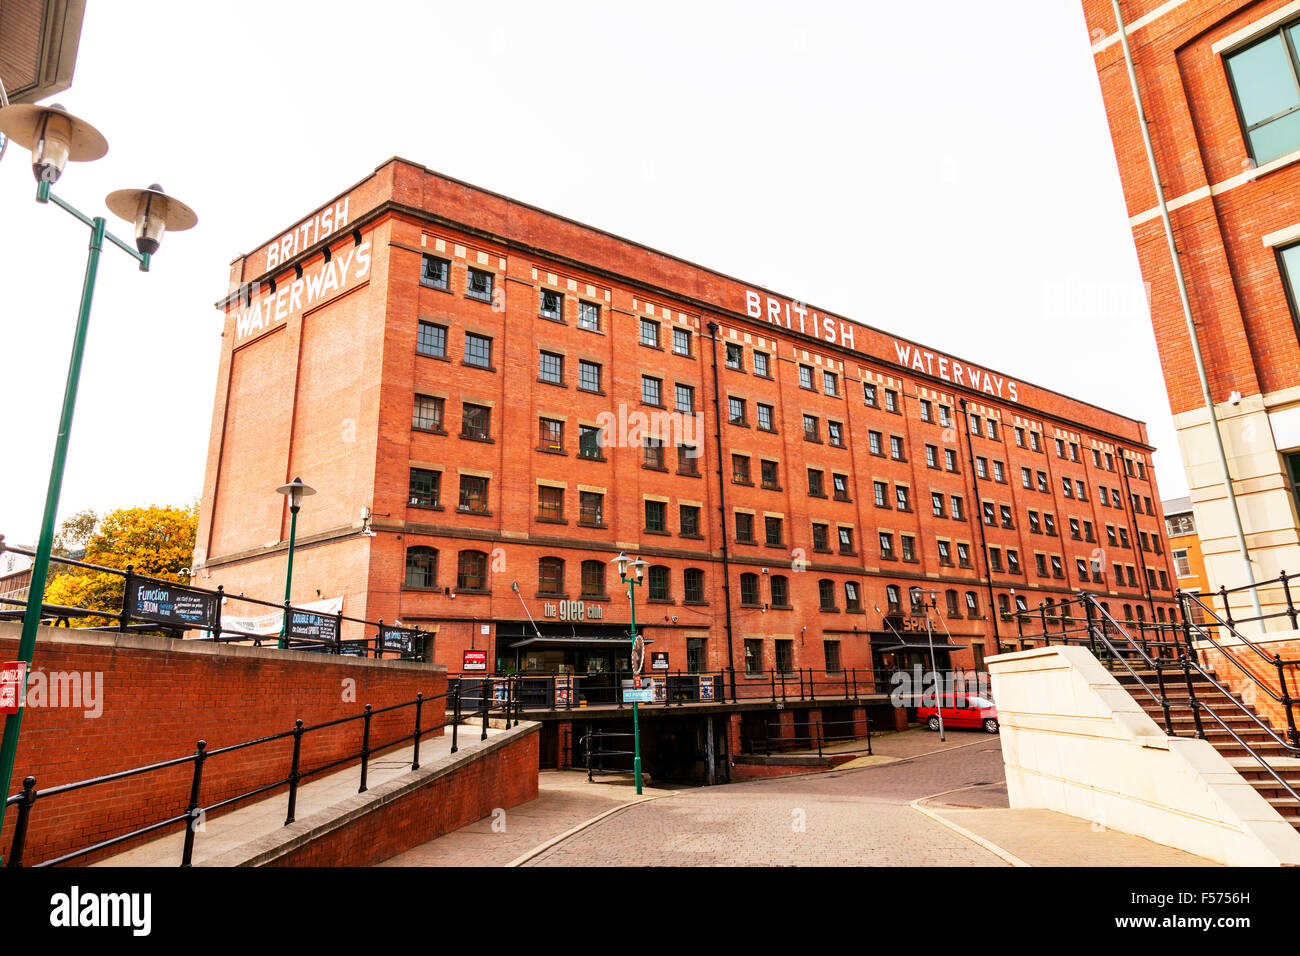 British Waterways building Nottingham City centre UK England sign exterior facade modern and old side together buildings - Stock Image